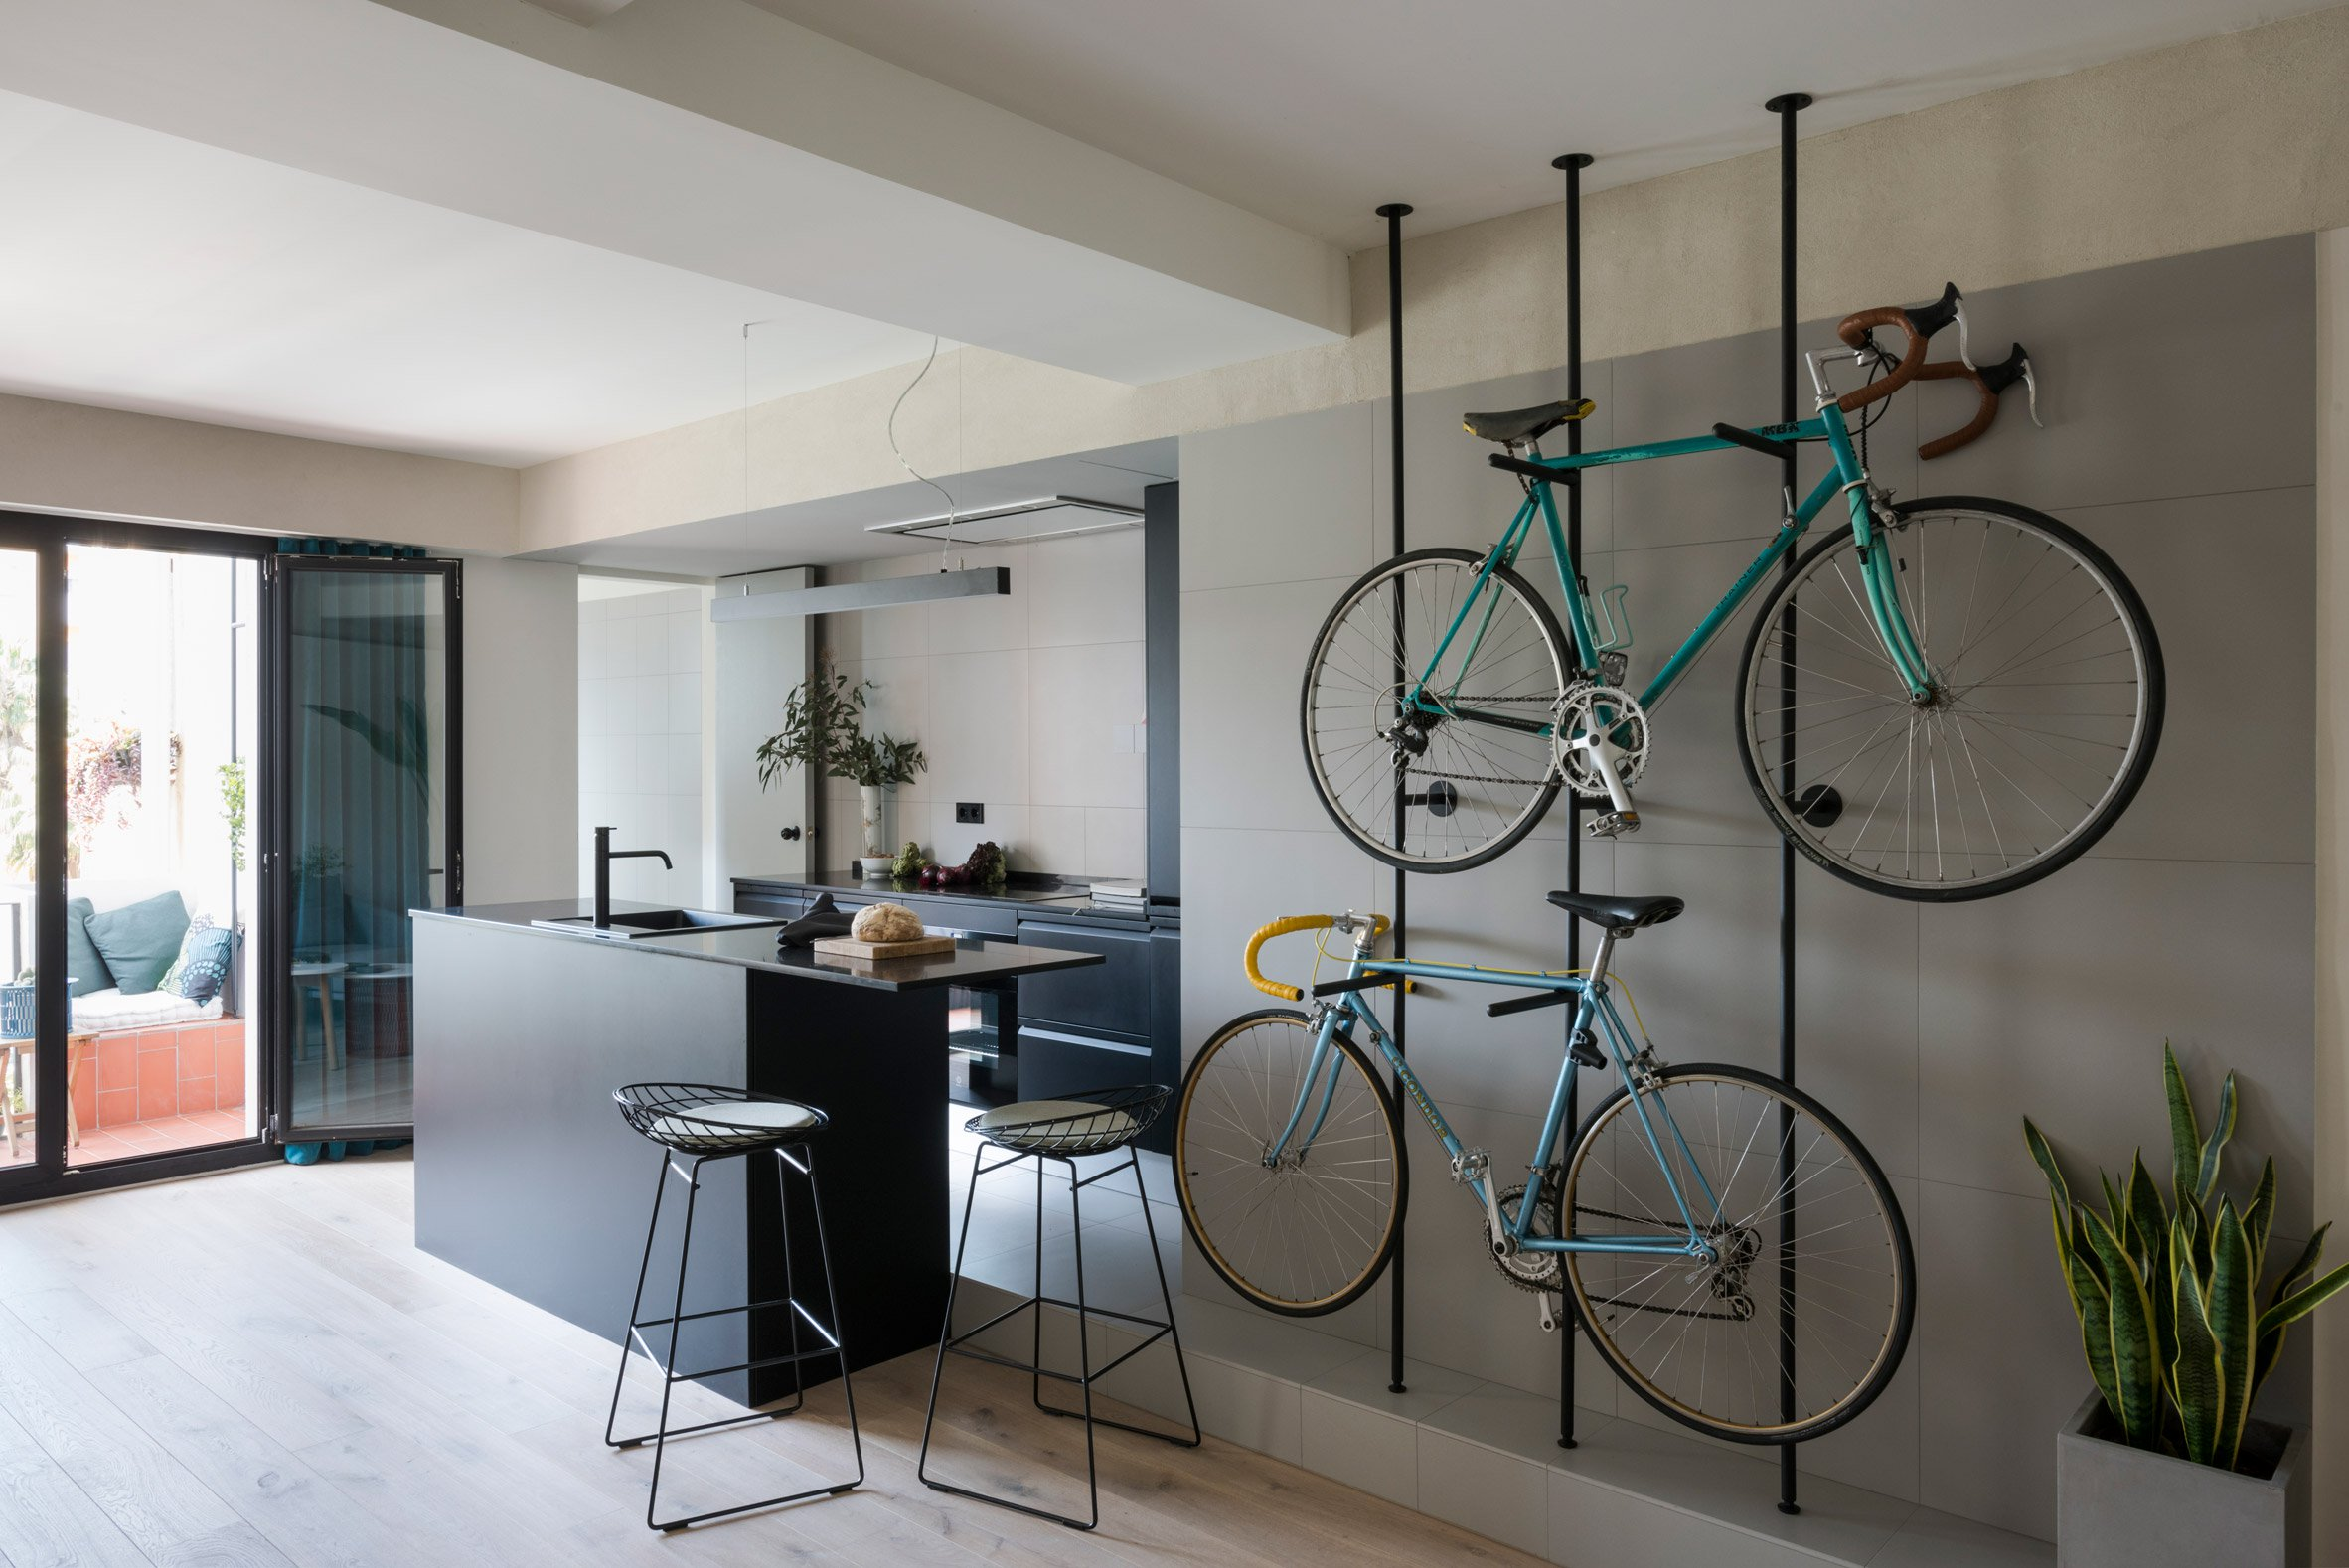 2. Home reno by Colombo and Serboli in Barcelona - Apartment renovation in Barcelona features bespoke bicycles storage